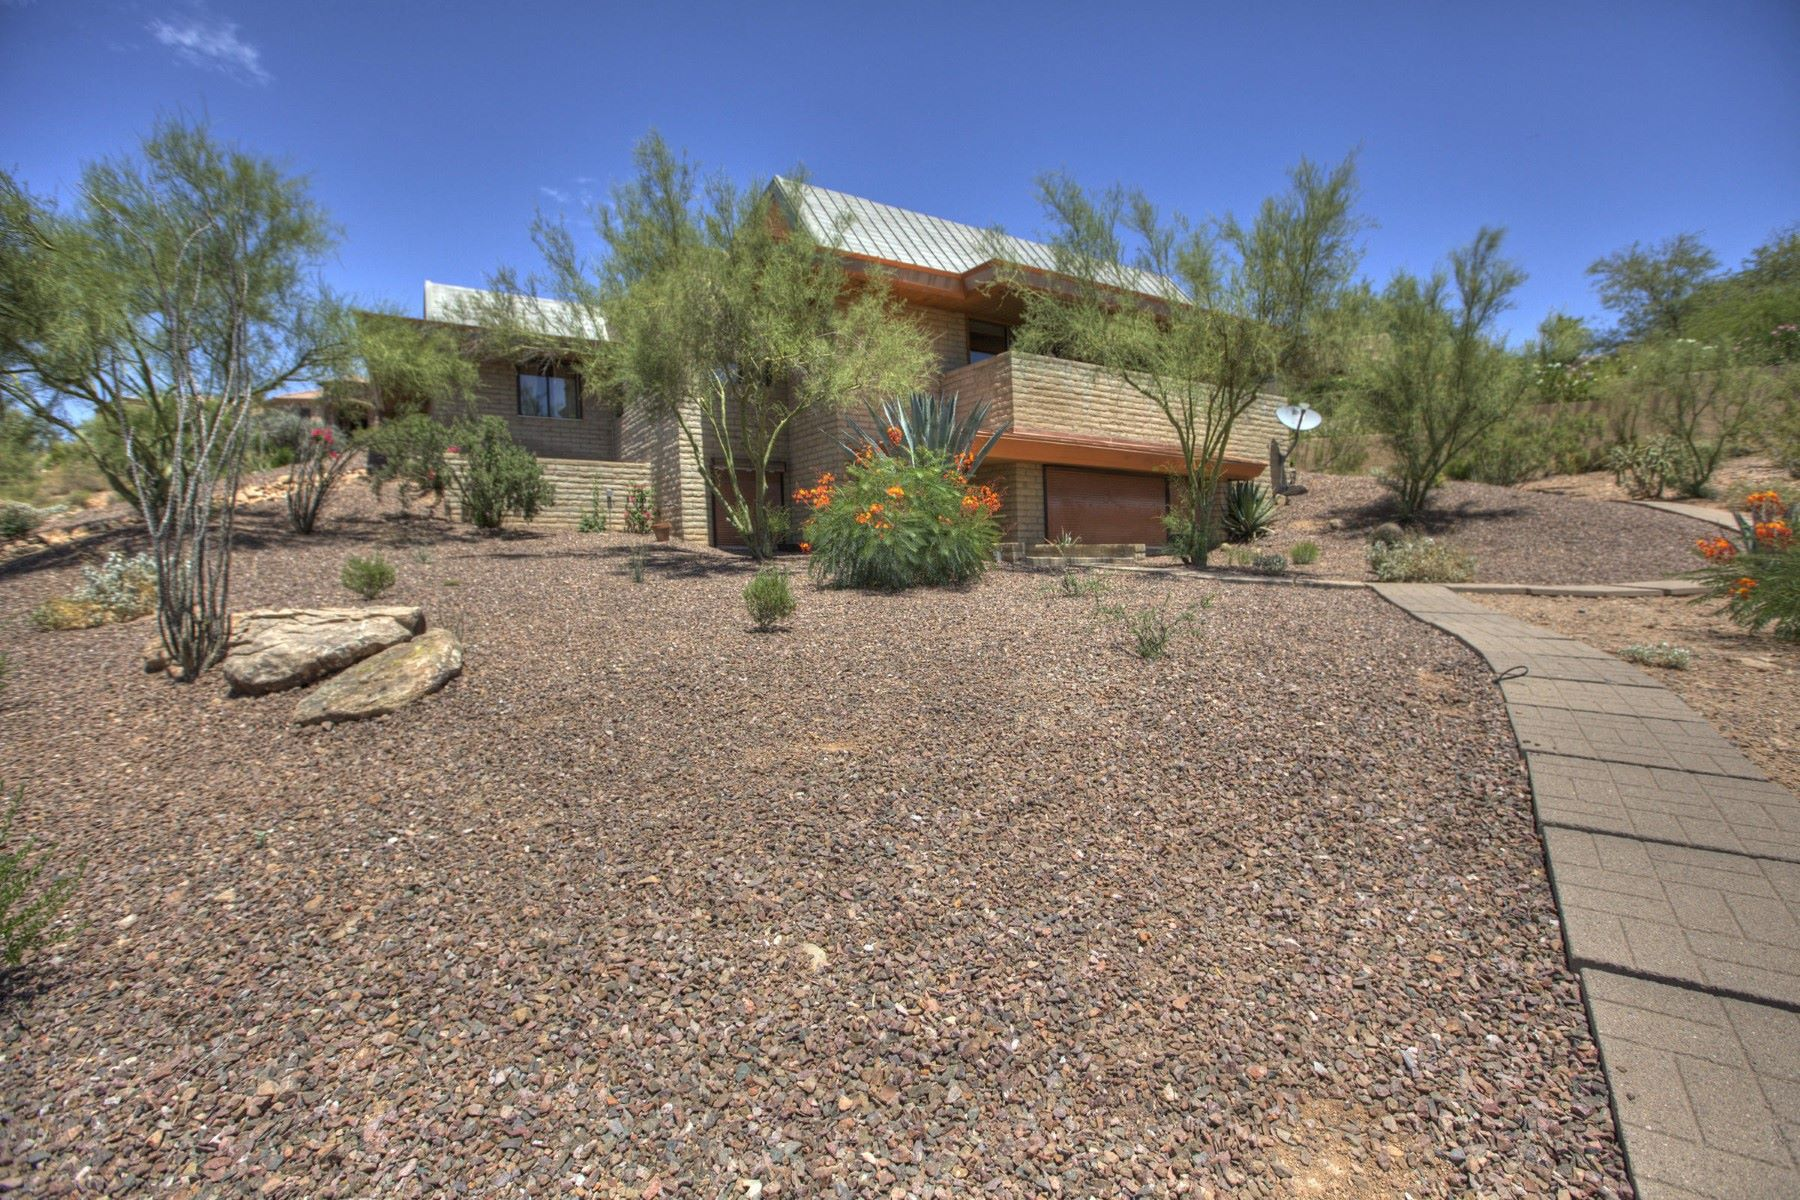 Single Family Home for Sale at Incredible home in Fountain Hills 11007 N Inca Ave Fountain Hills, Arizona, 85268 United States